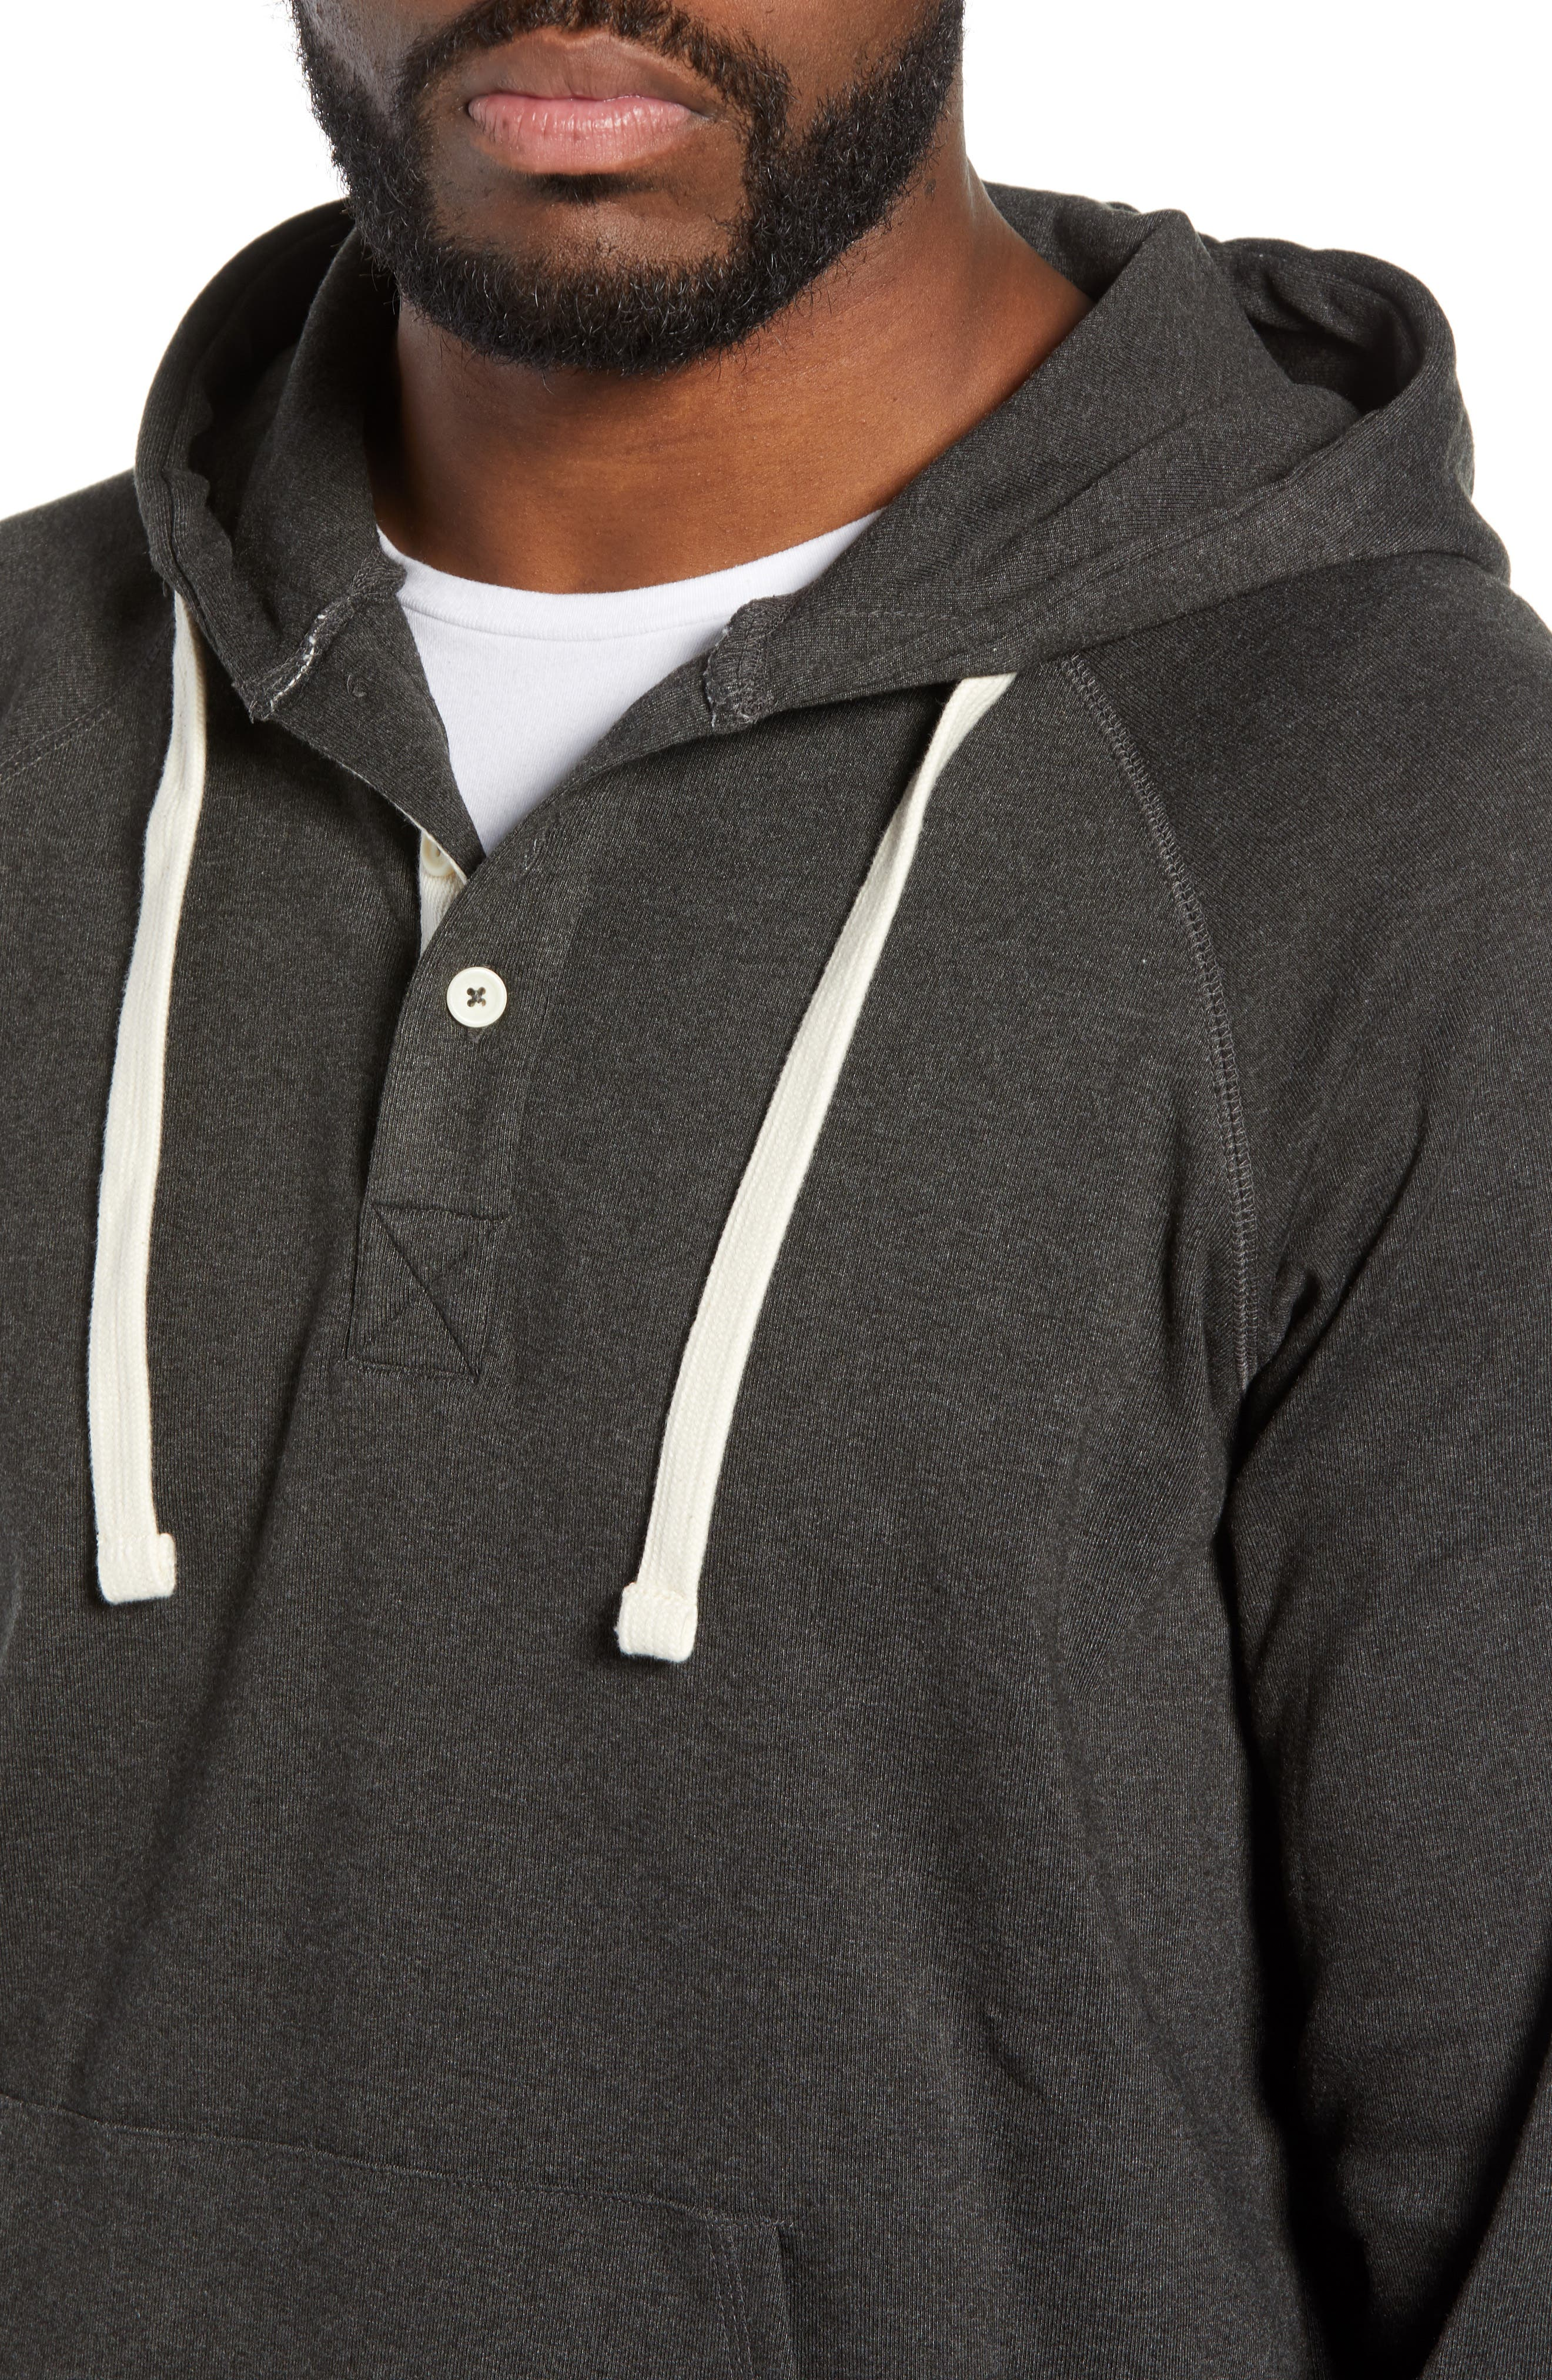 Puremeso Pullover Hoodie,                             Alternate thumbnail 4, color,                             CHARCOAL